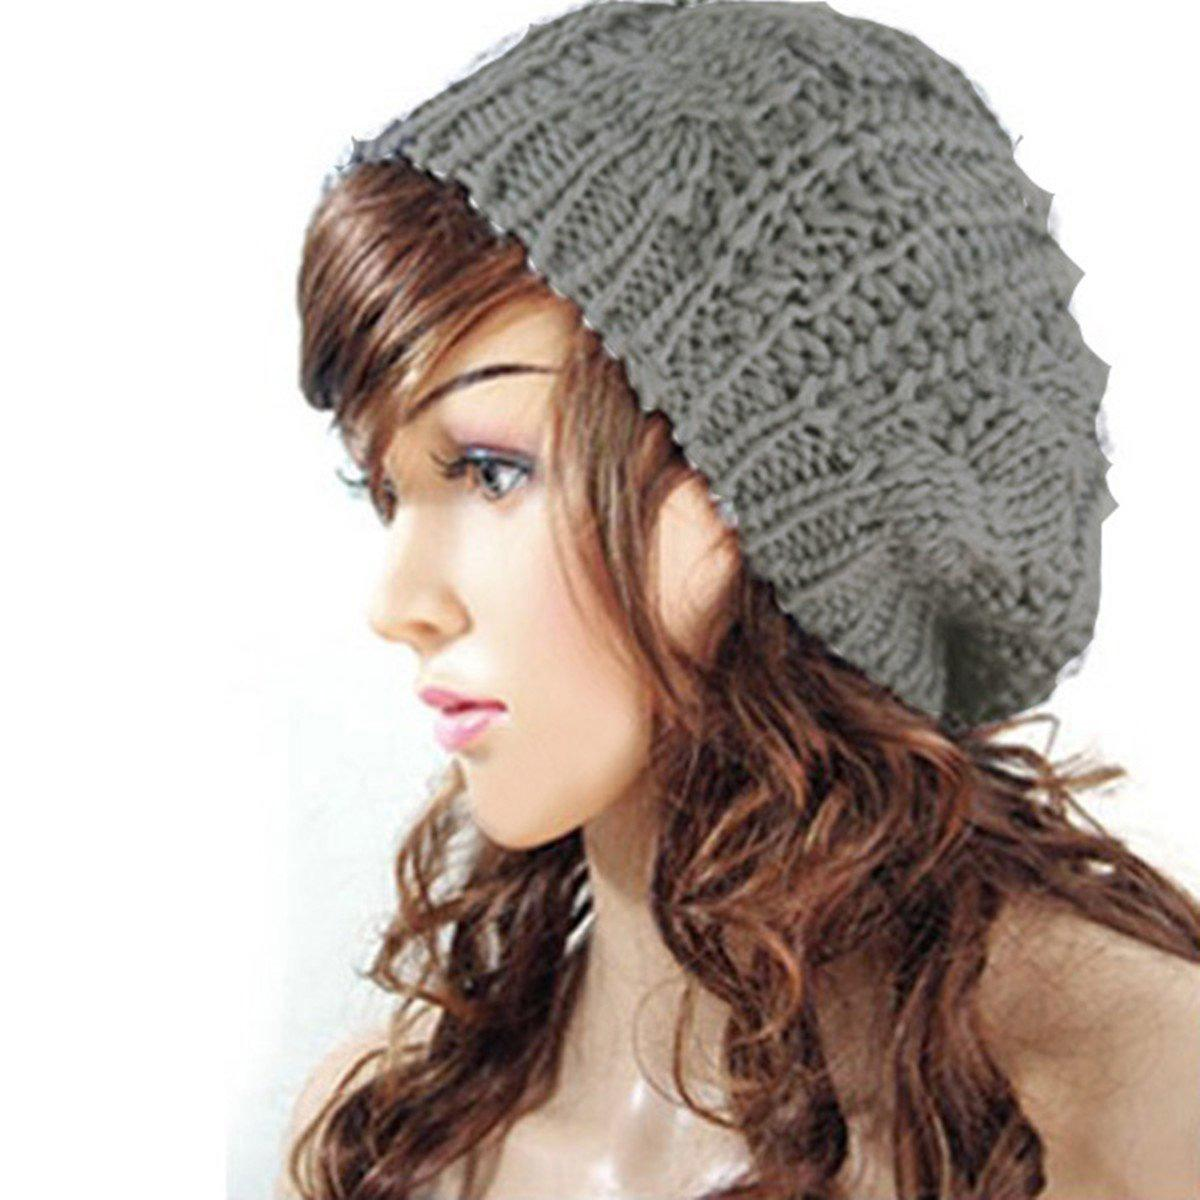 0f0f092d8dd 2019 NEW Women Baggy Beret Chunky Knit Braided Beanie Hat Cap Light Grey  From Fragmentt